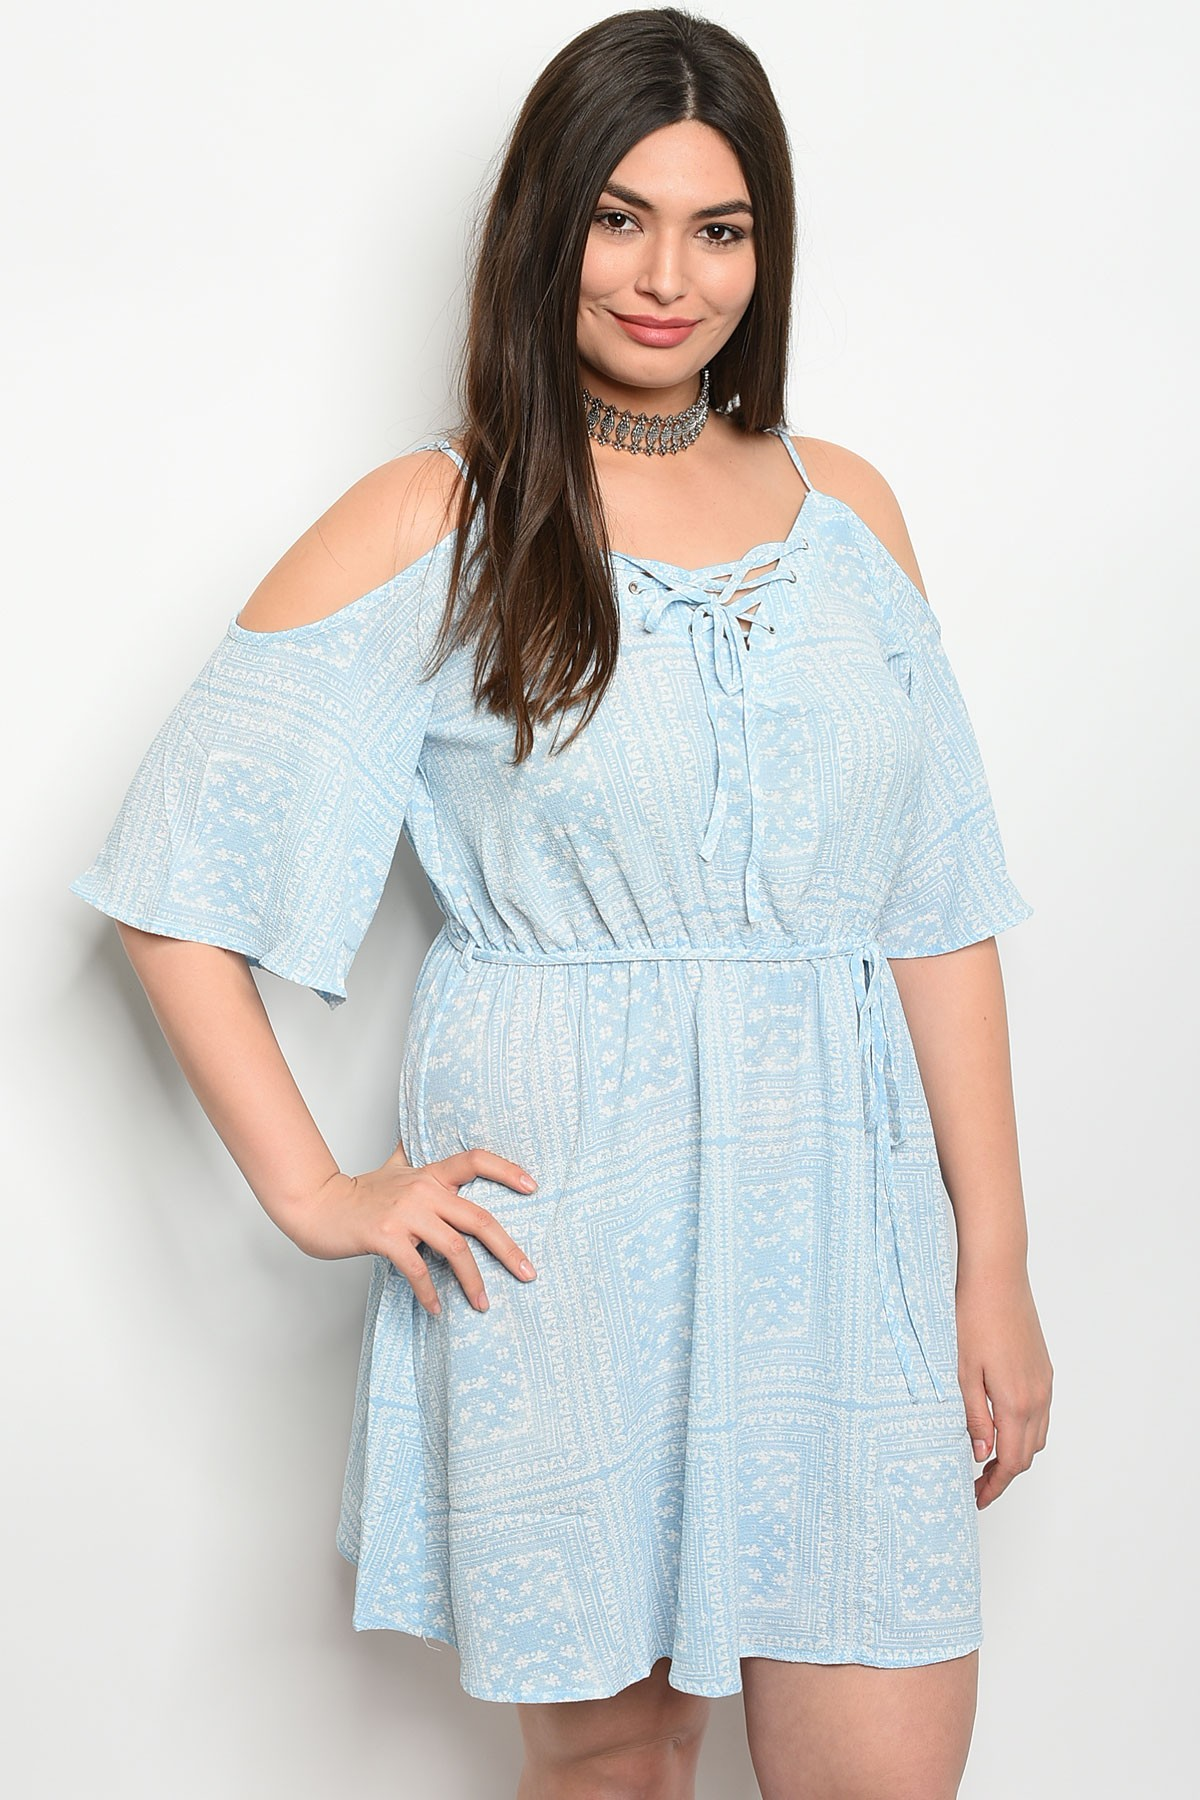 12-2-D1494X SKY BLUE WHITE PLUS SIZE DRESS 2-2-2